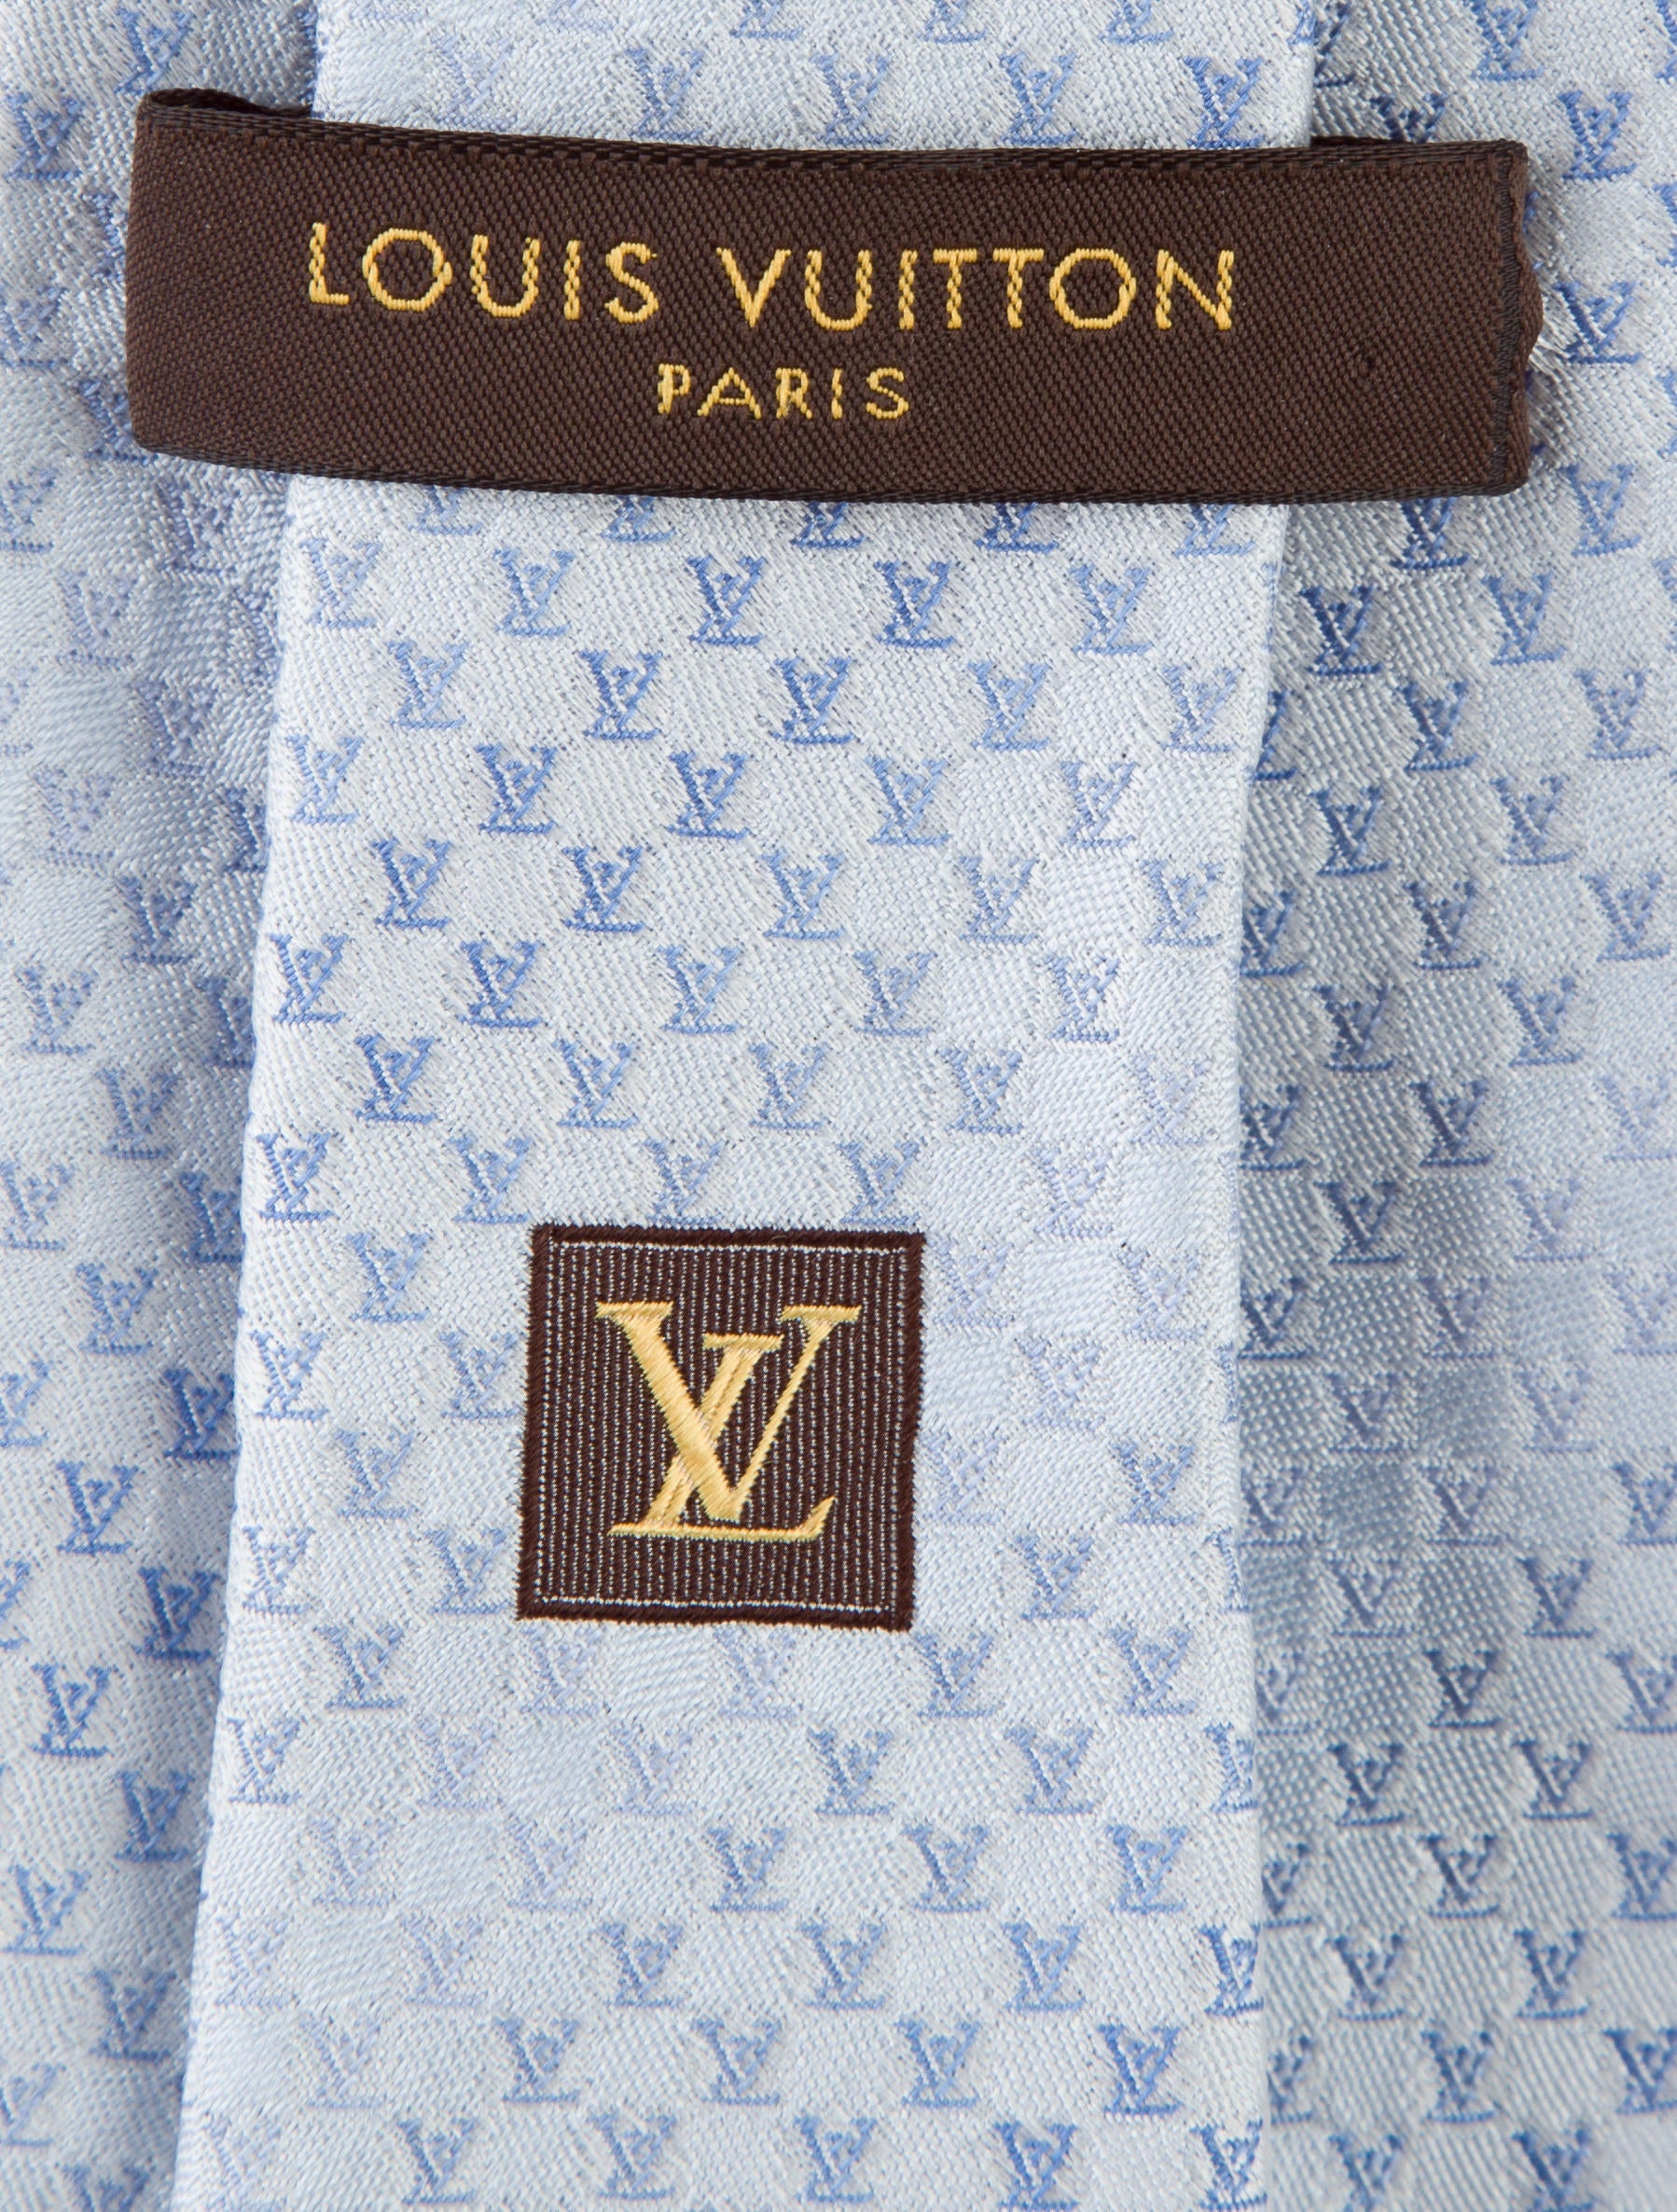 Louis Vuitton Logo Print Silk Tie - Suiting Accessories ...